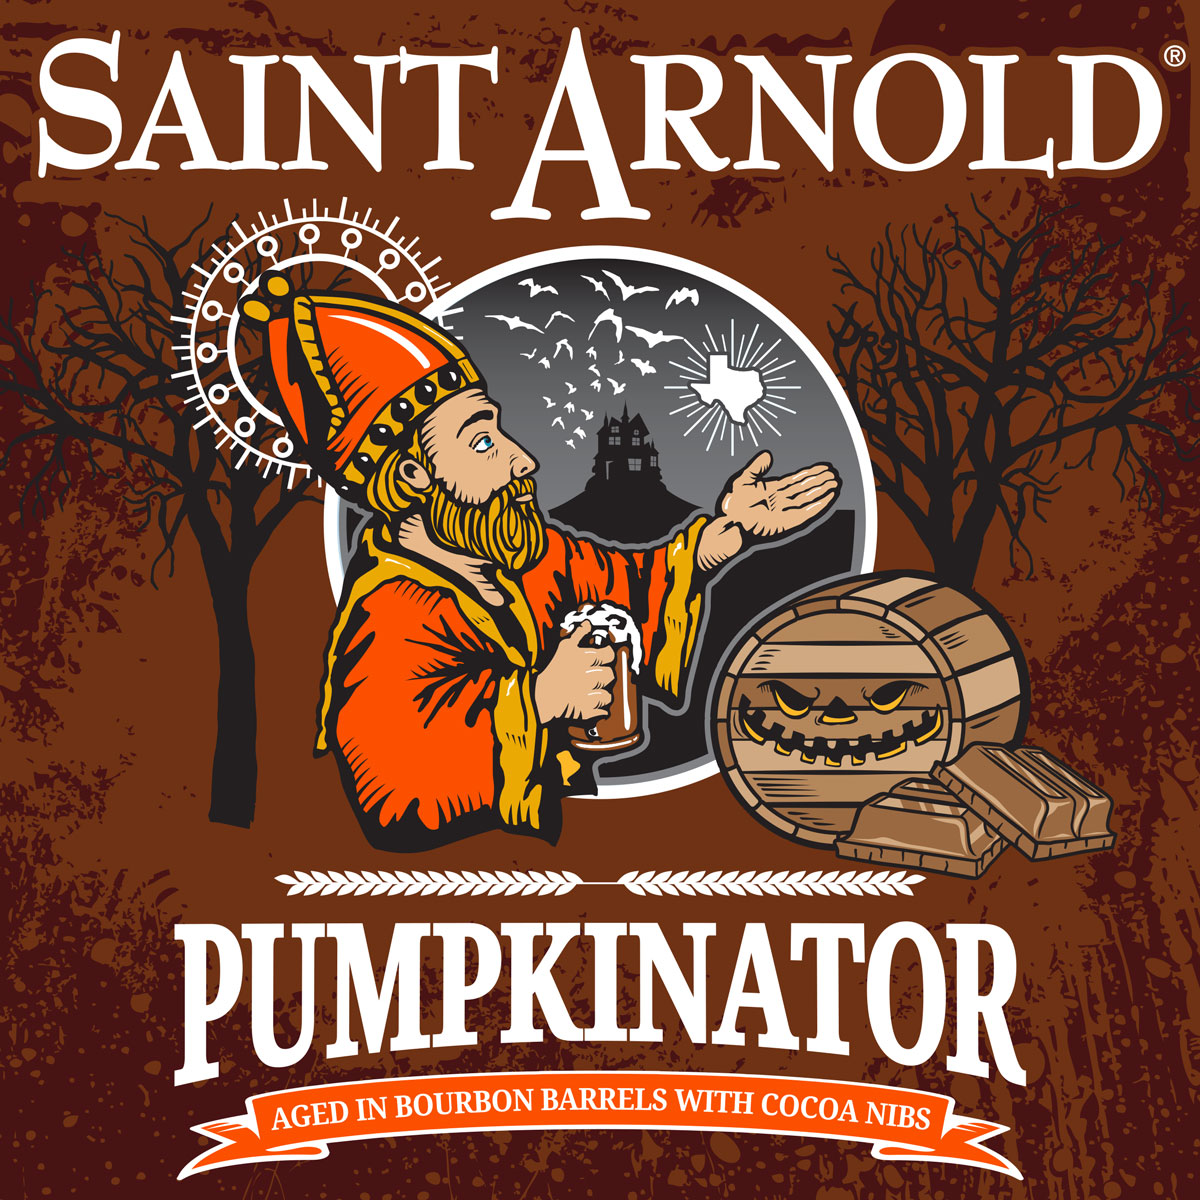 brand_image_pumpkinator_aged_in_bourbon_barrels_with_cocoa_nibs_no_year